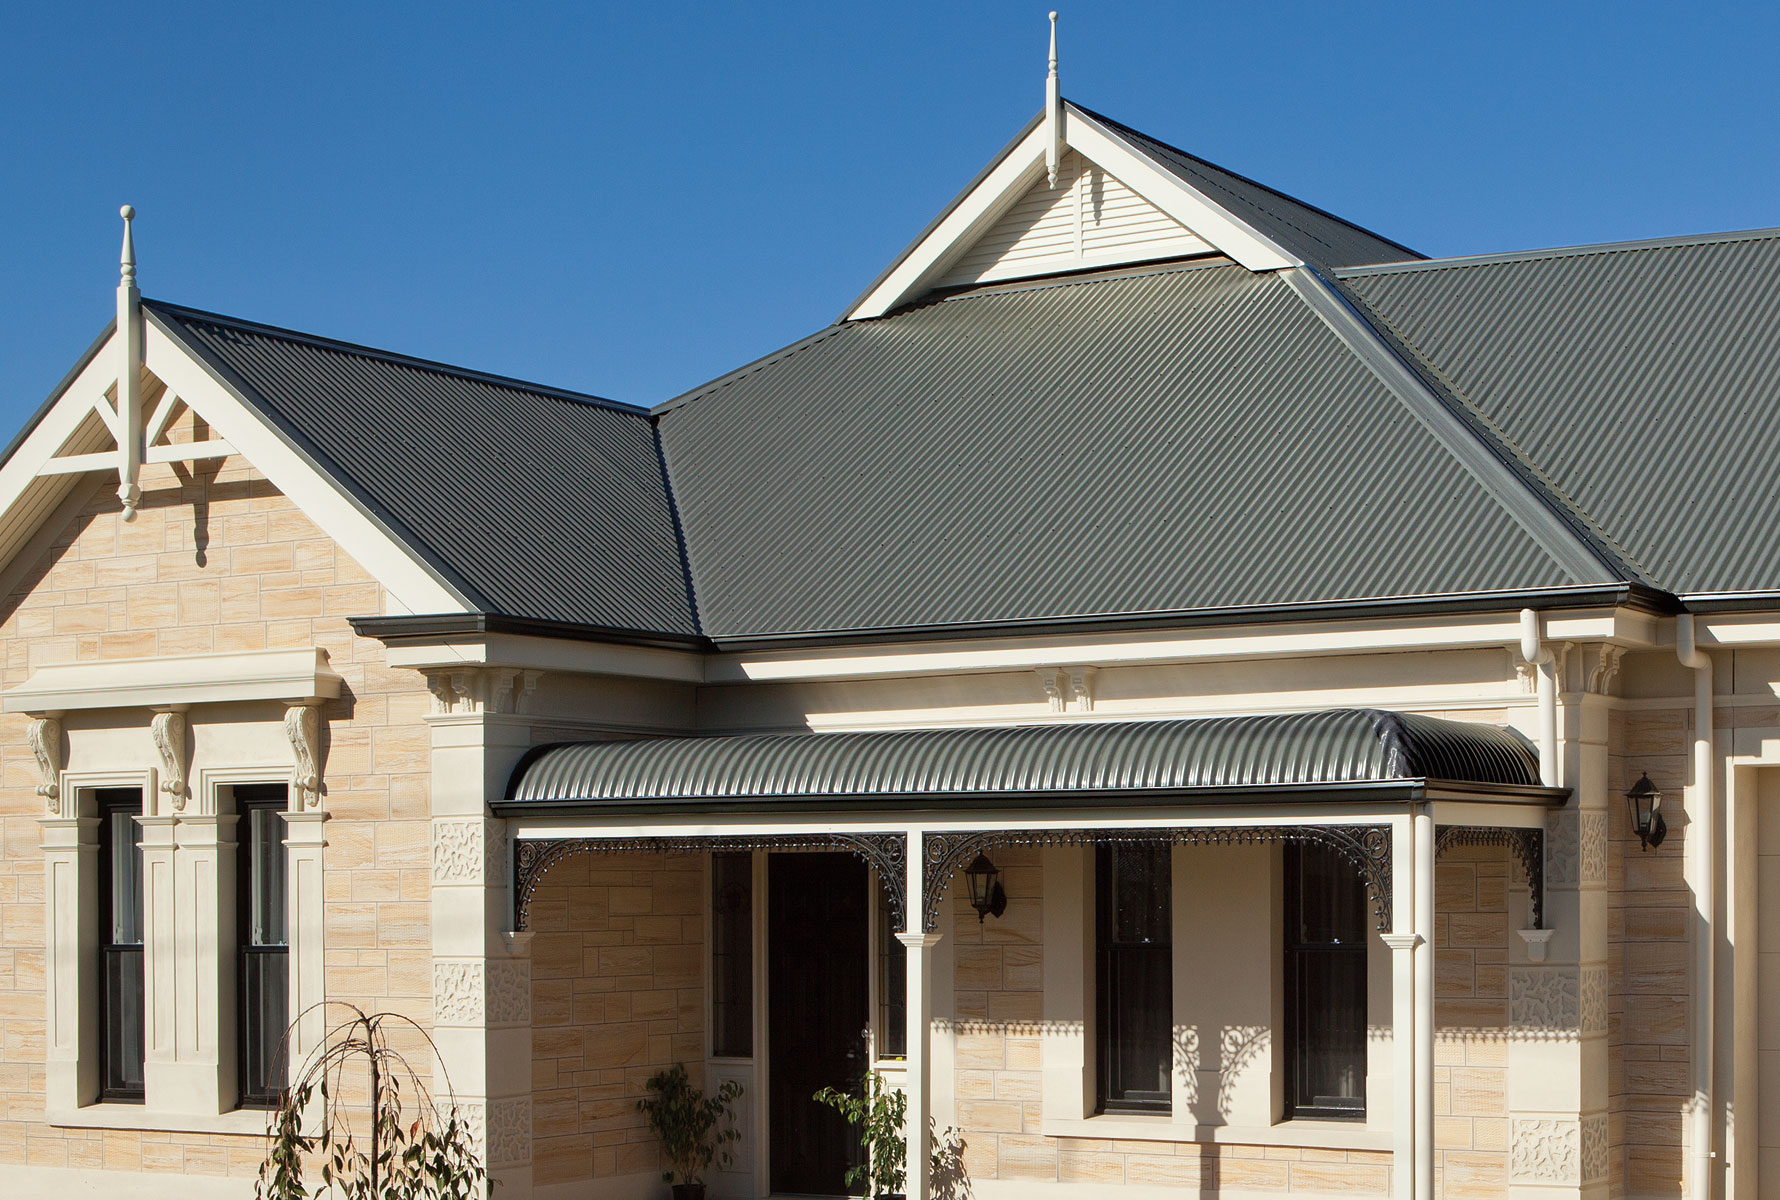 Top Tips to Maintain the Corrugated Roof - 1